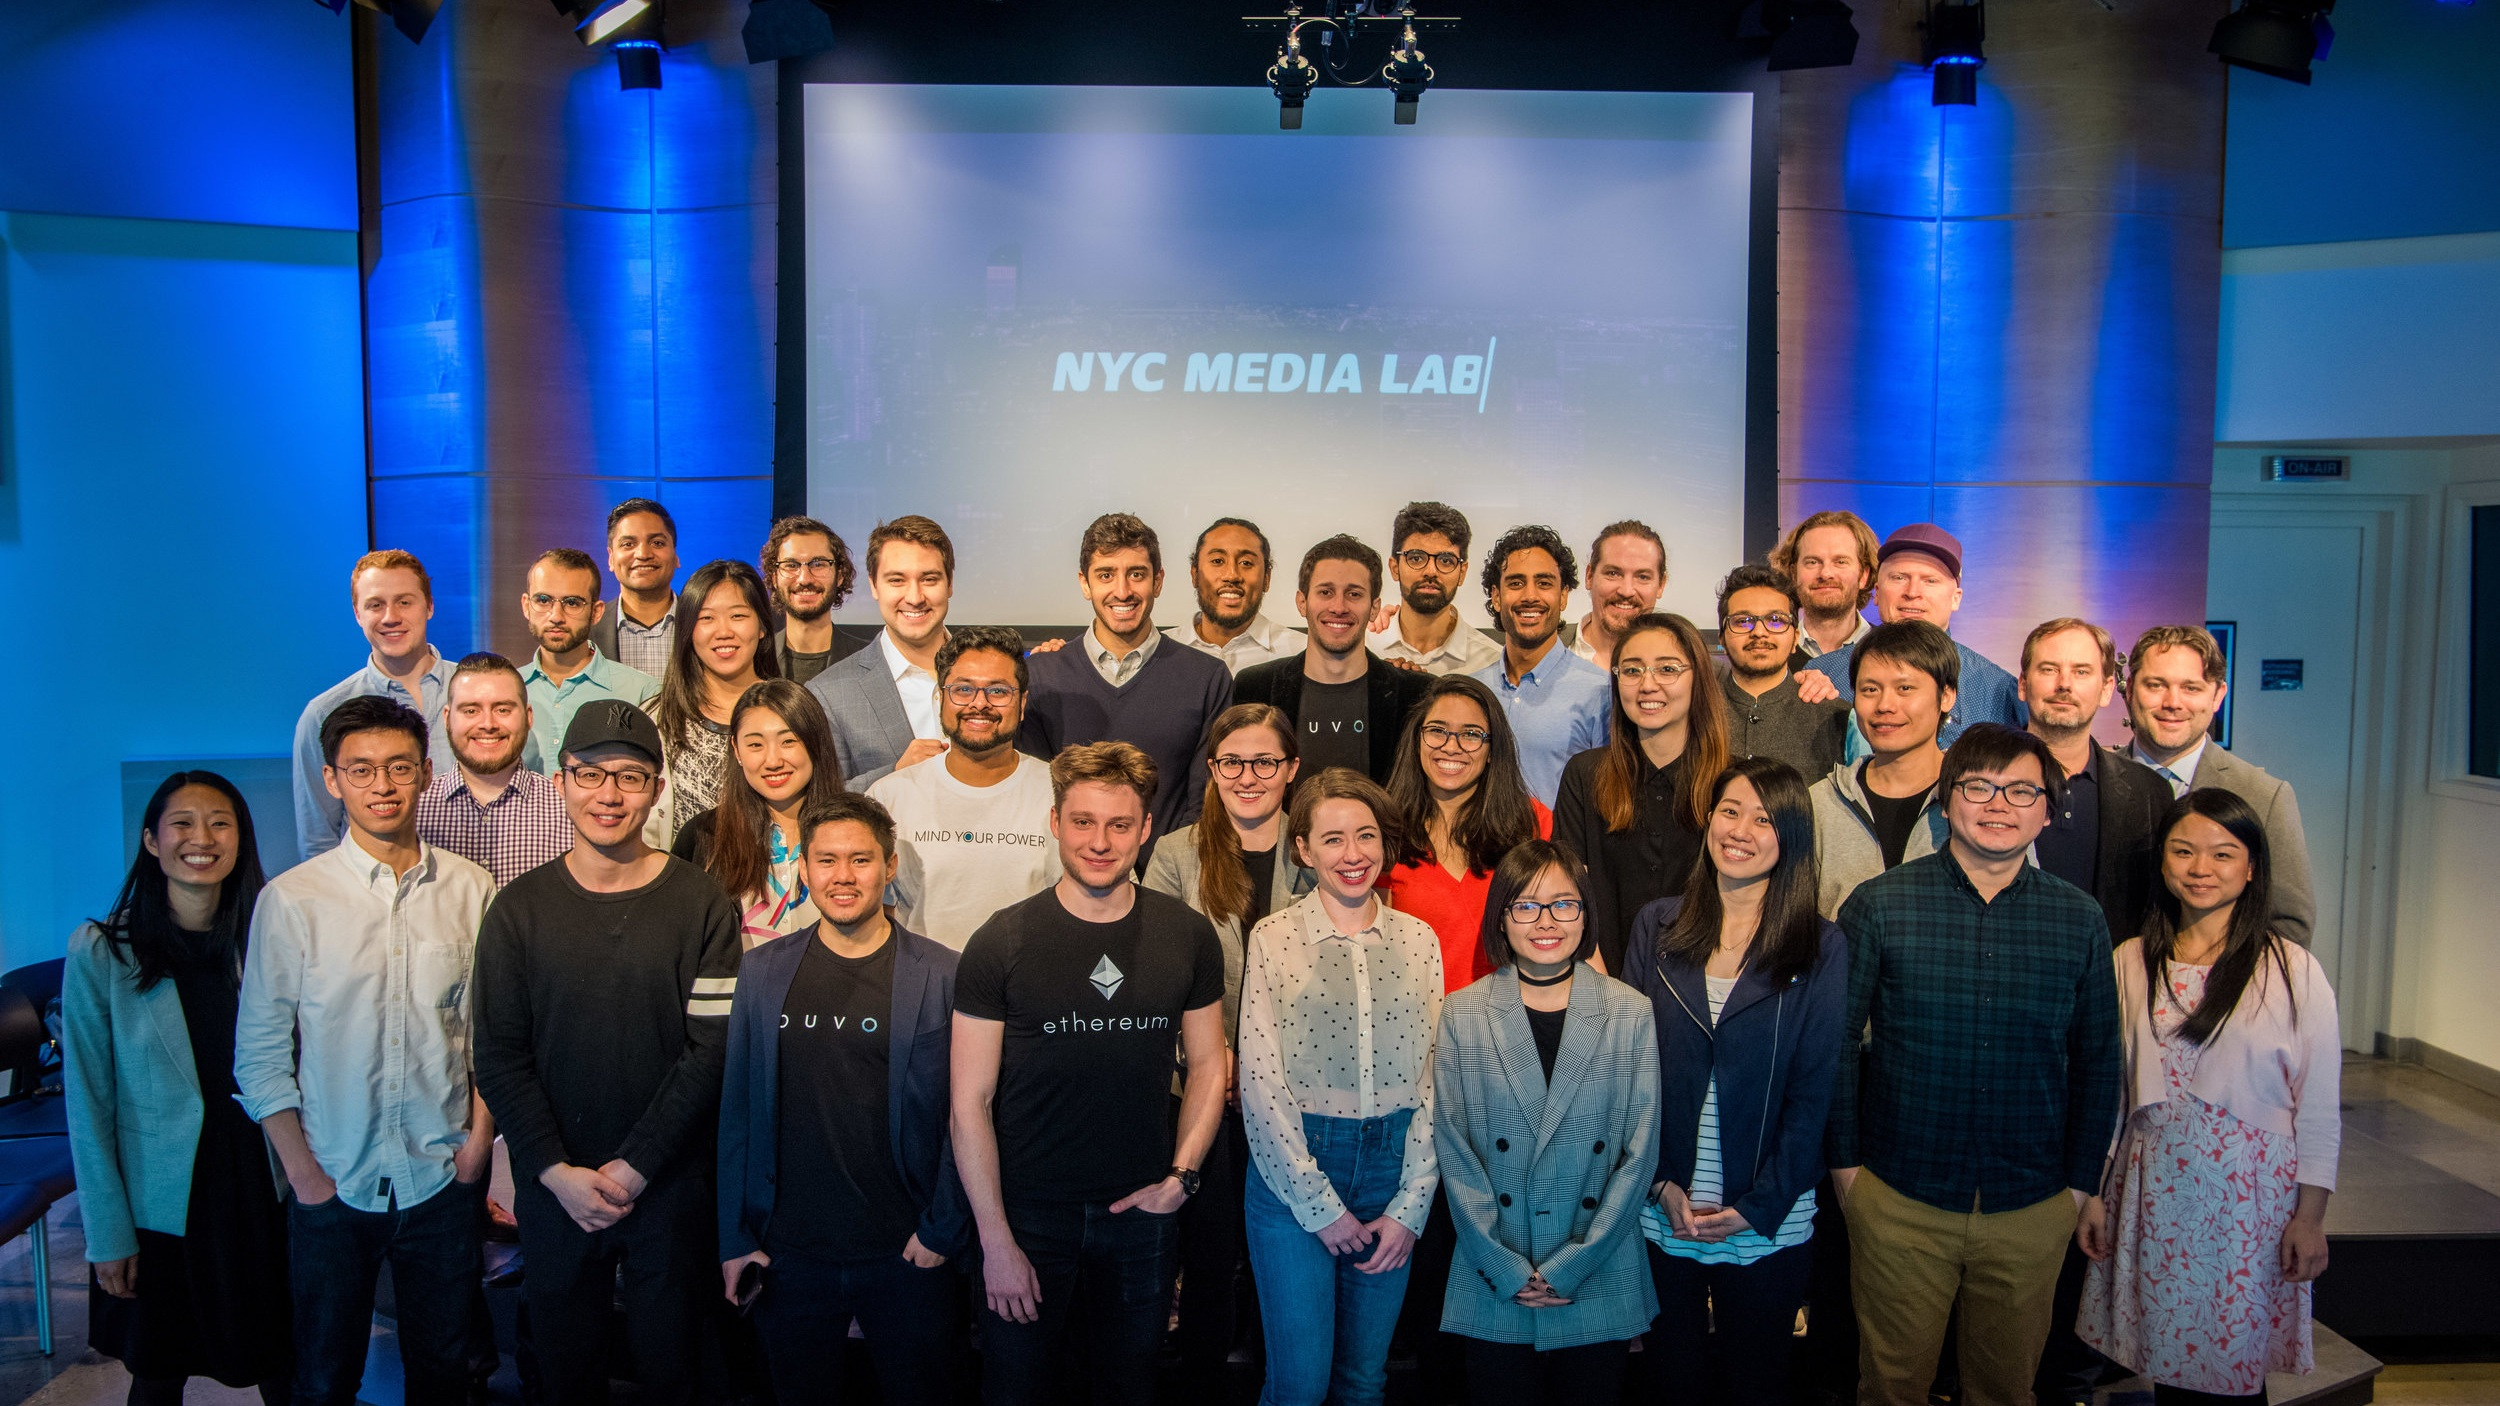 Grow the Community - Build a network of startup founders, corporate innovation executives, and faculty experts to support first-time entrepreneurs across our network of NYC universities.